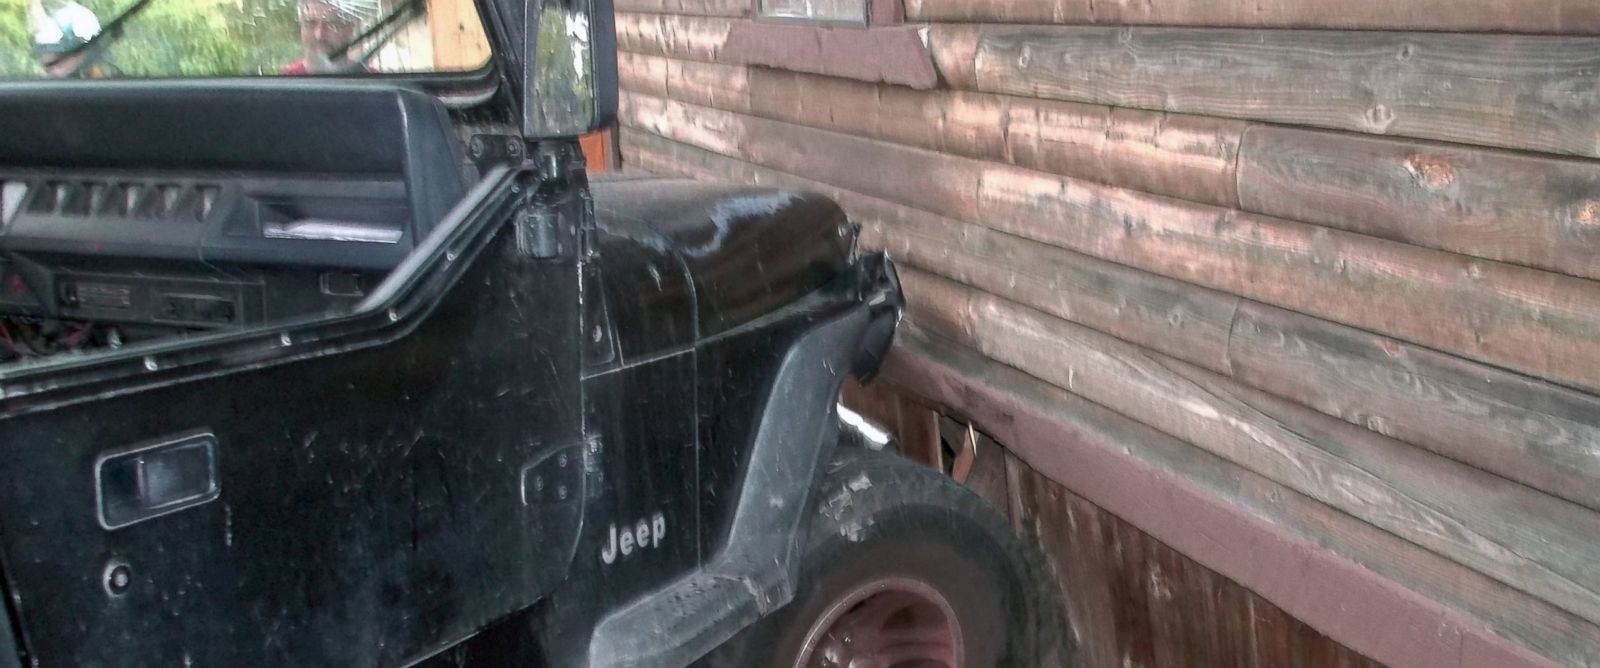 PHOTO: Authorities say a toddler crashed this Jeep into a home in Myrtle Creek, Ore. after knocking the vehicle out of gear, July 24, 2014.